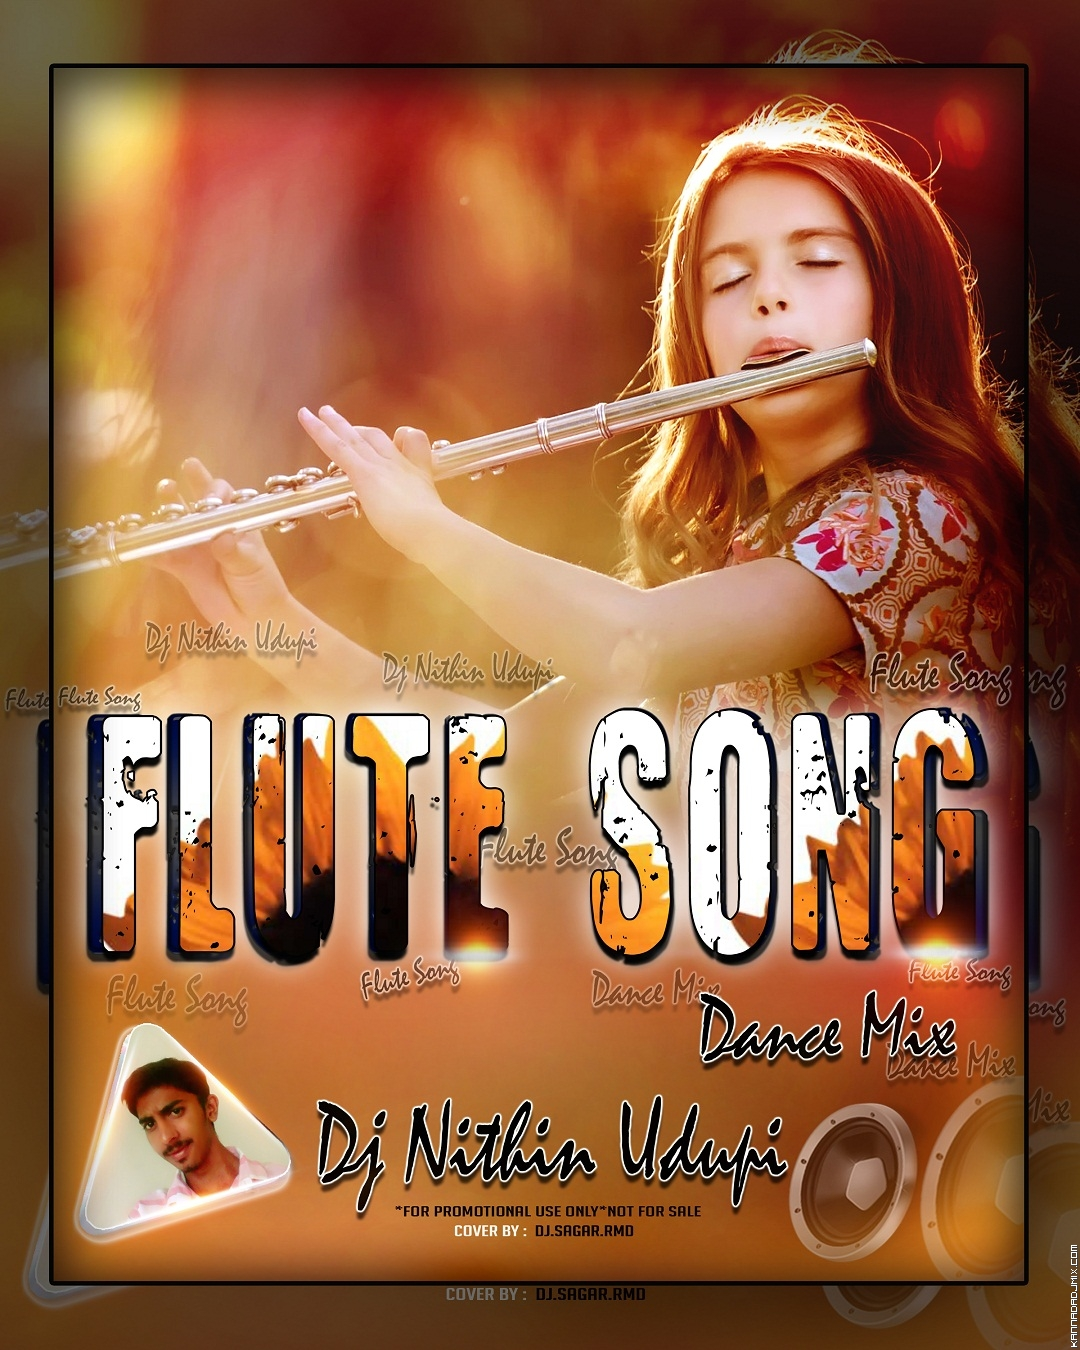 FLUTE SONG DANCE MIX DJ NITHIN UDUPI.mp3